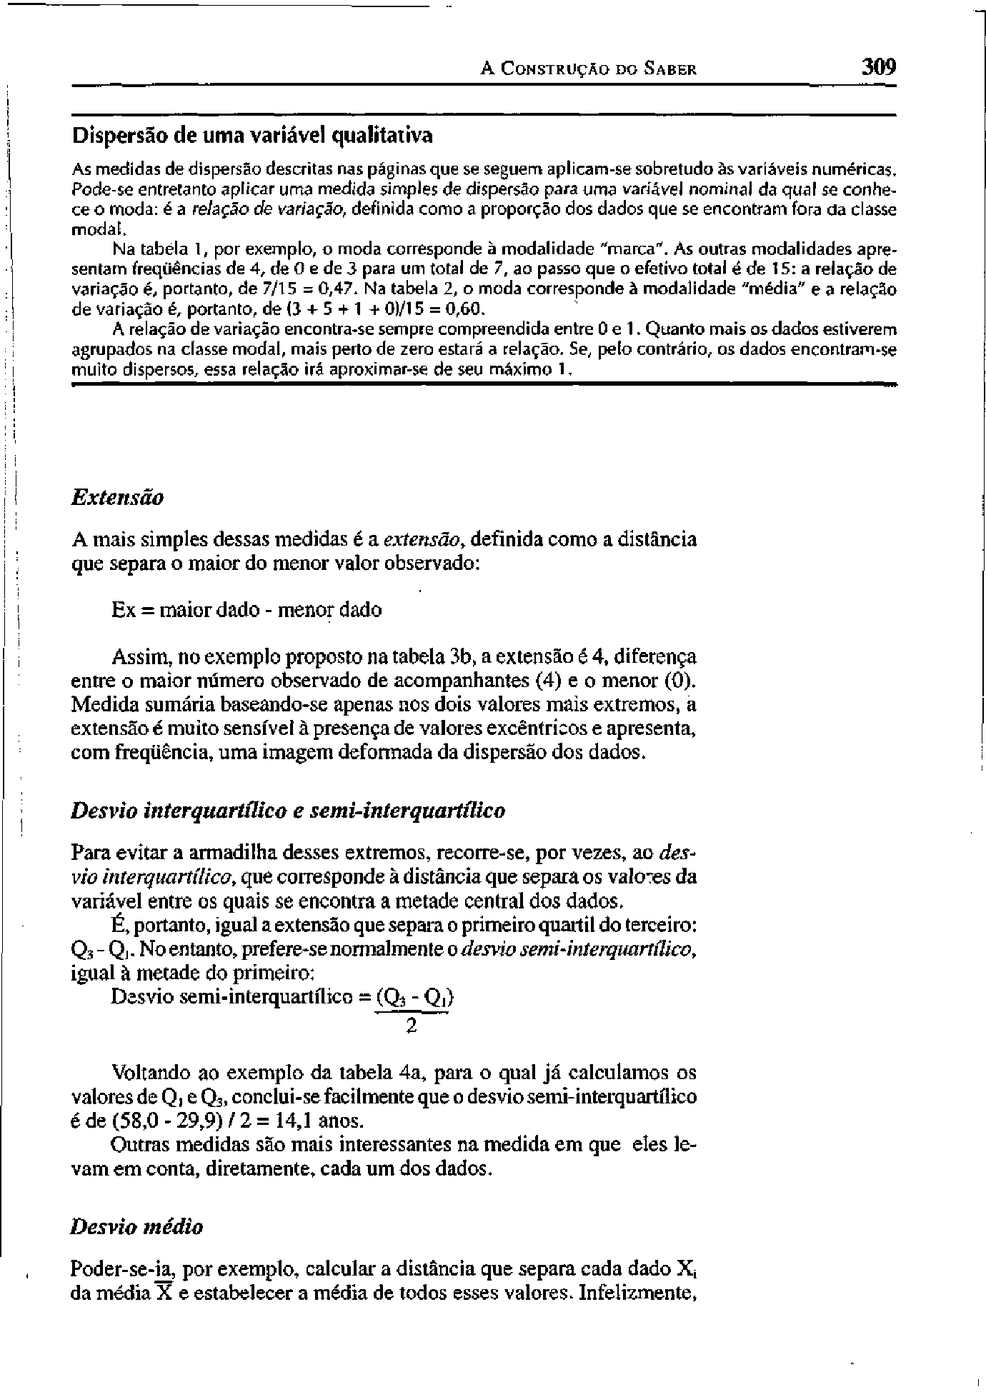 Page 310